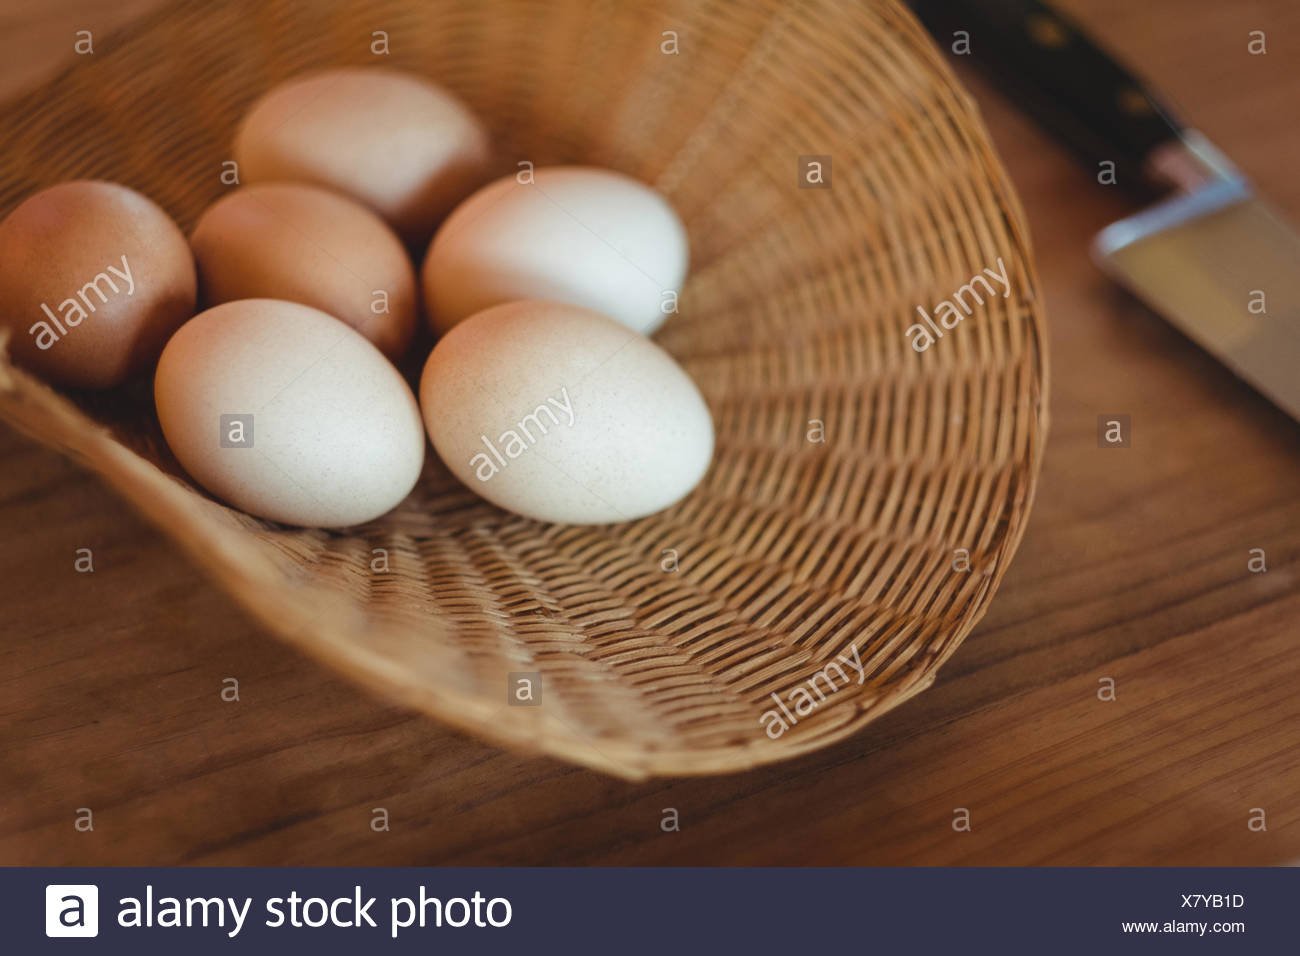 Eggs in wicker basket on wooden table - Stock Image